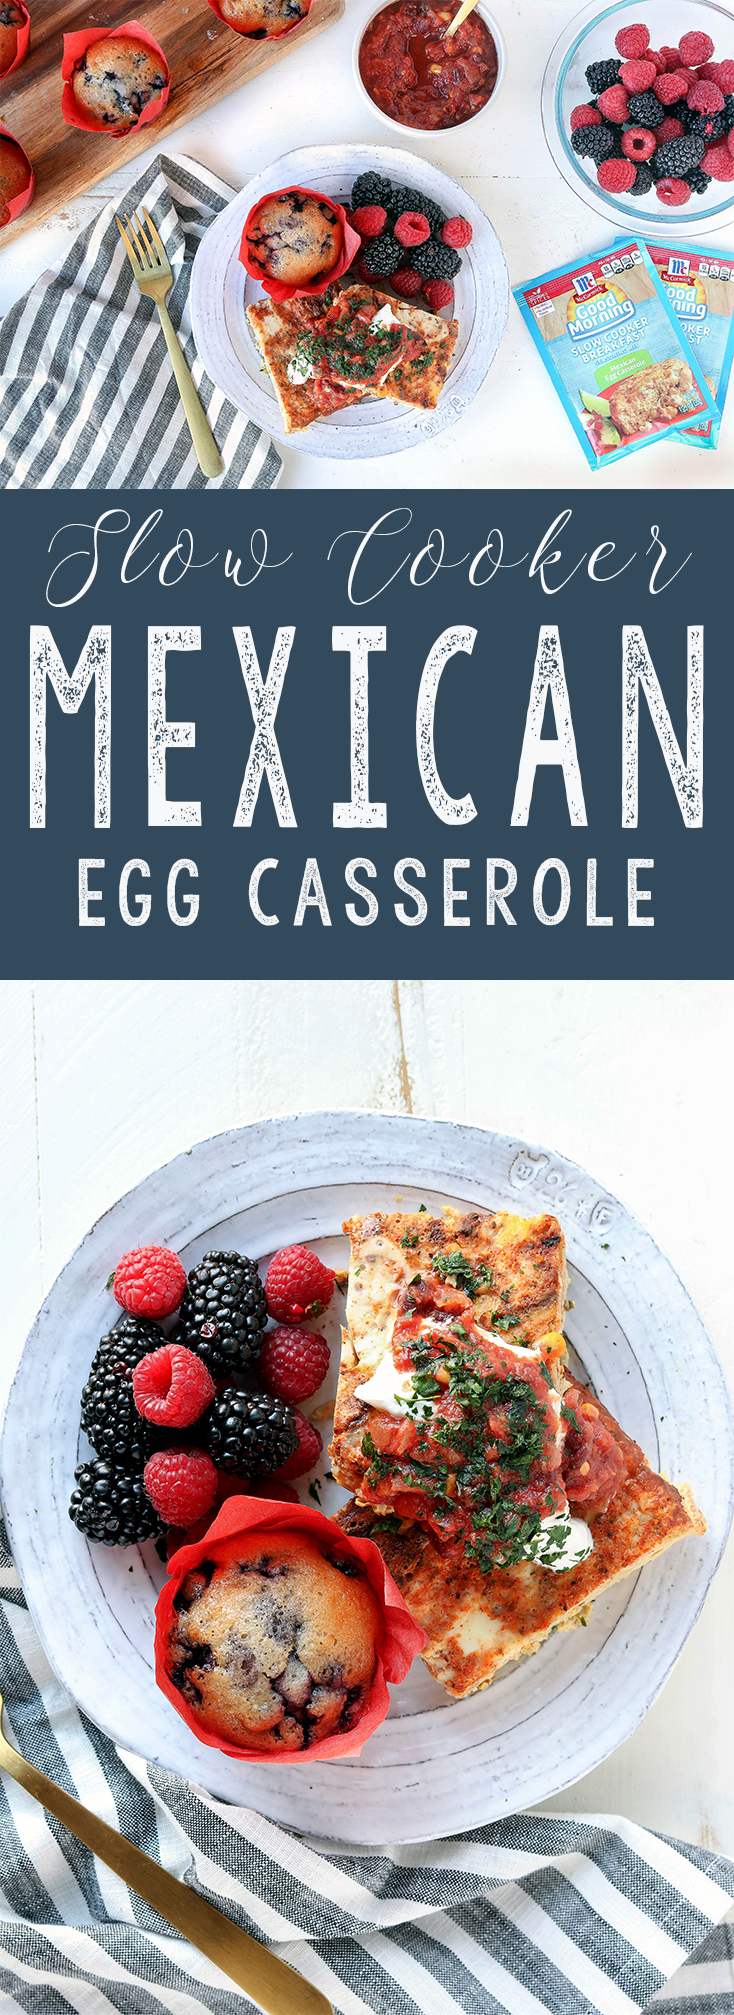 Quick, simple hearty breakfast at it's finest. Ease into your morning routine with Slow Cooker Mexican Egg Casserole.